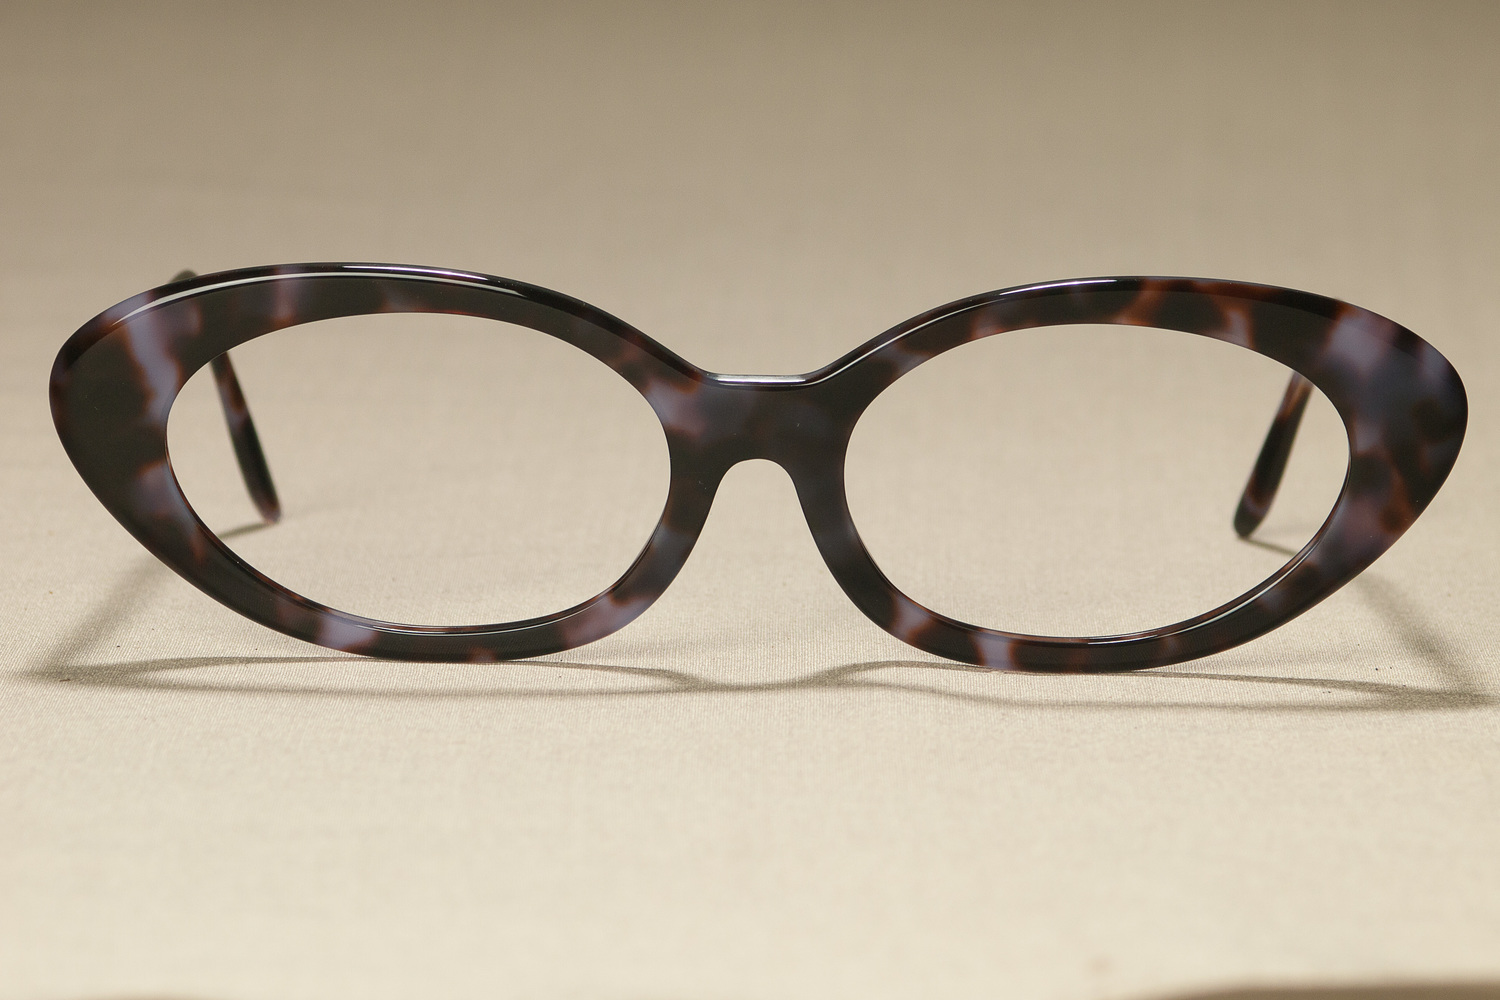 Indivijual-Custom-Glasses-19.jpg